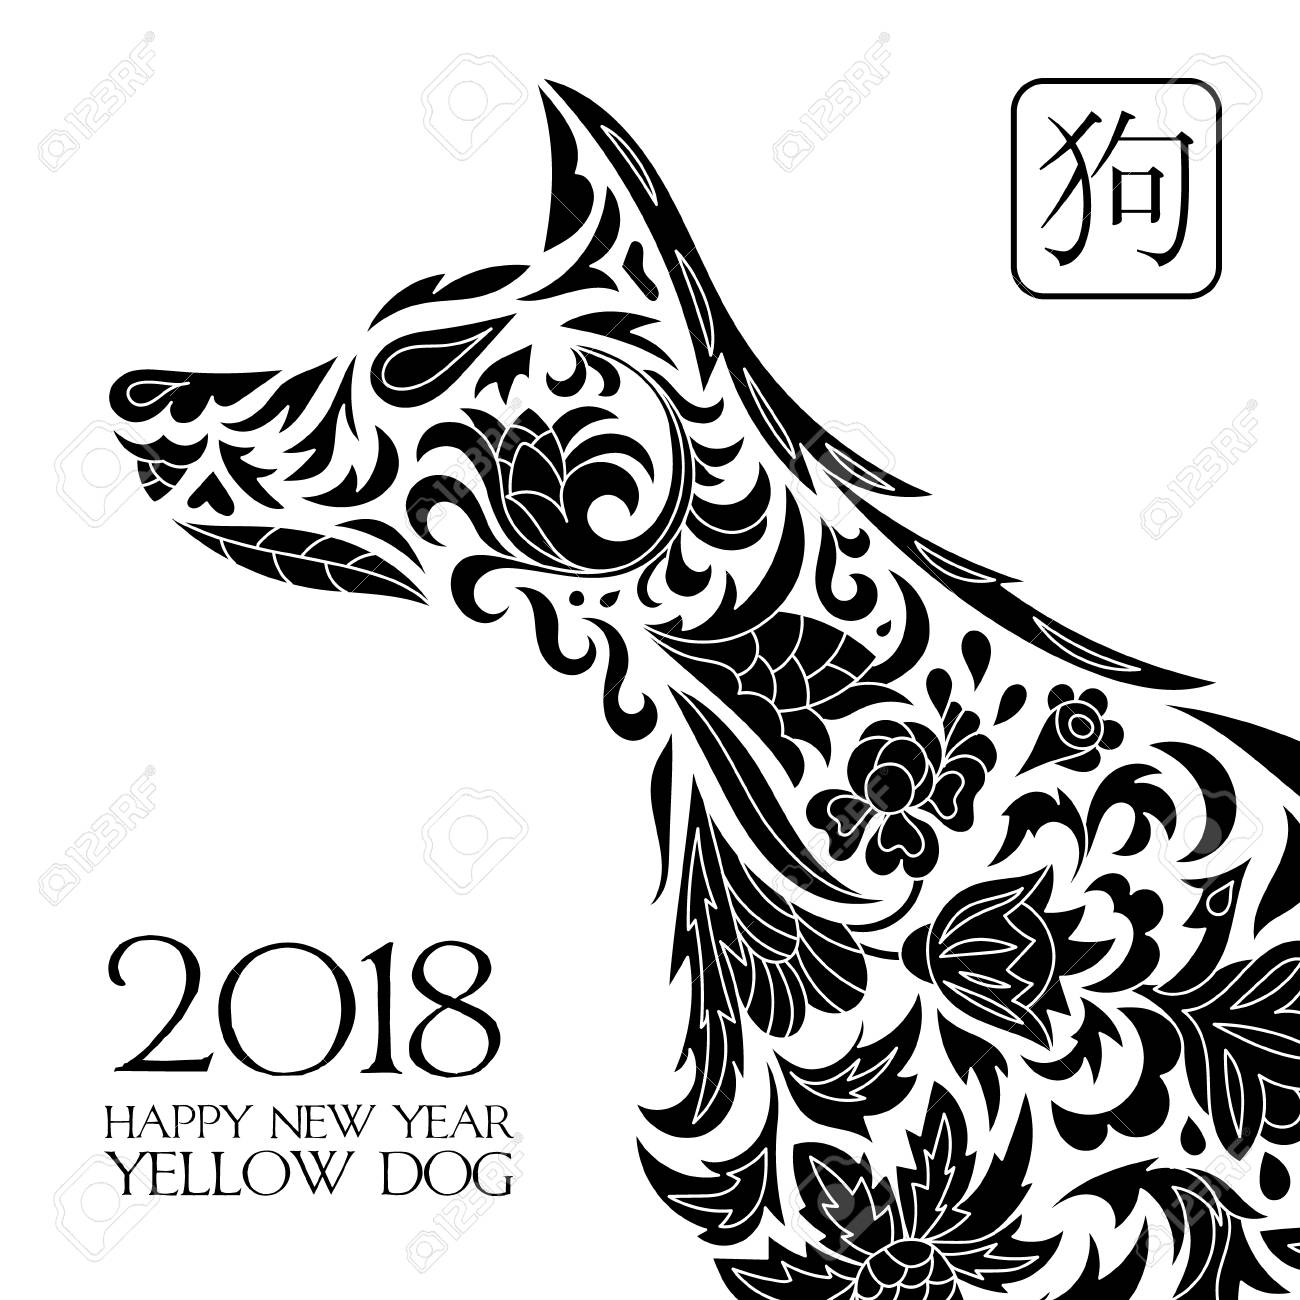 Greeting chinese new year 2018 card with stylized dog on white greeting chinese new year 2018 card with stylized dog on white background stock vector m4hsunfo